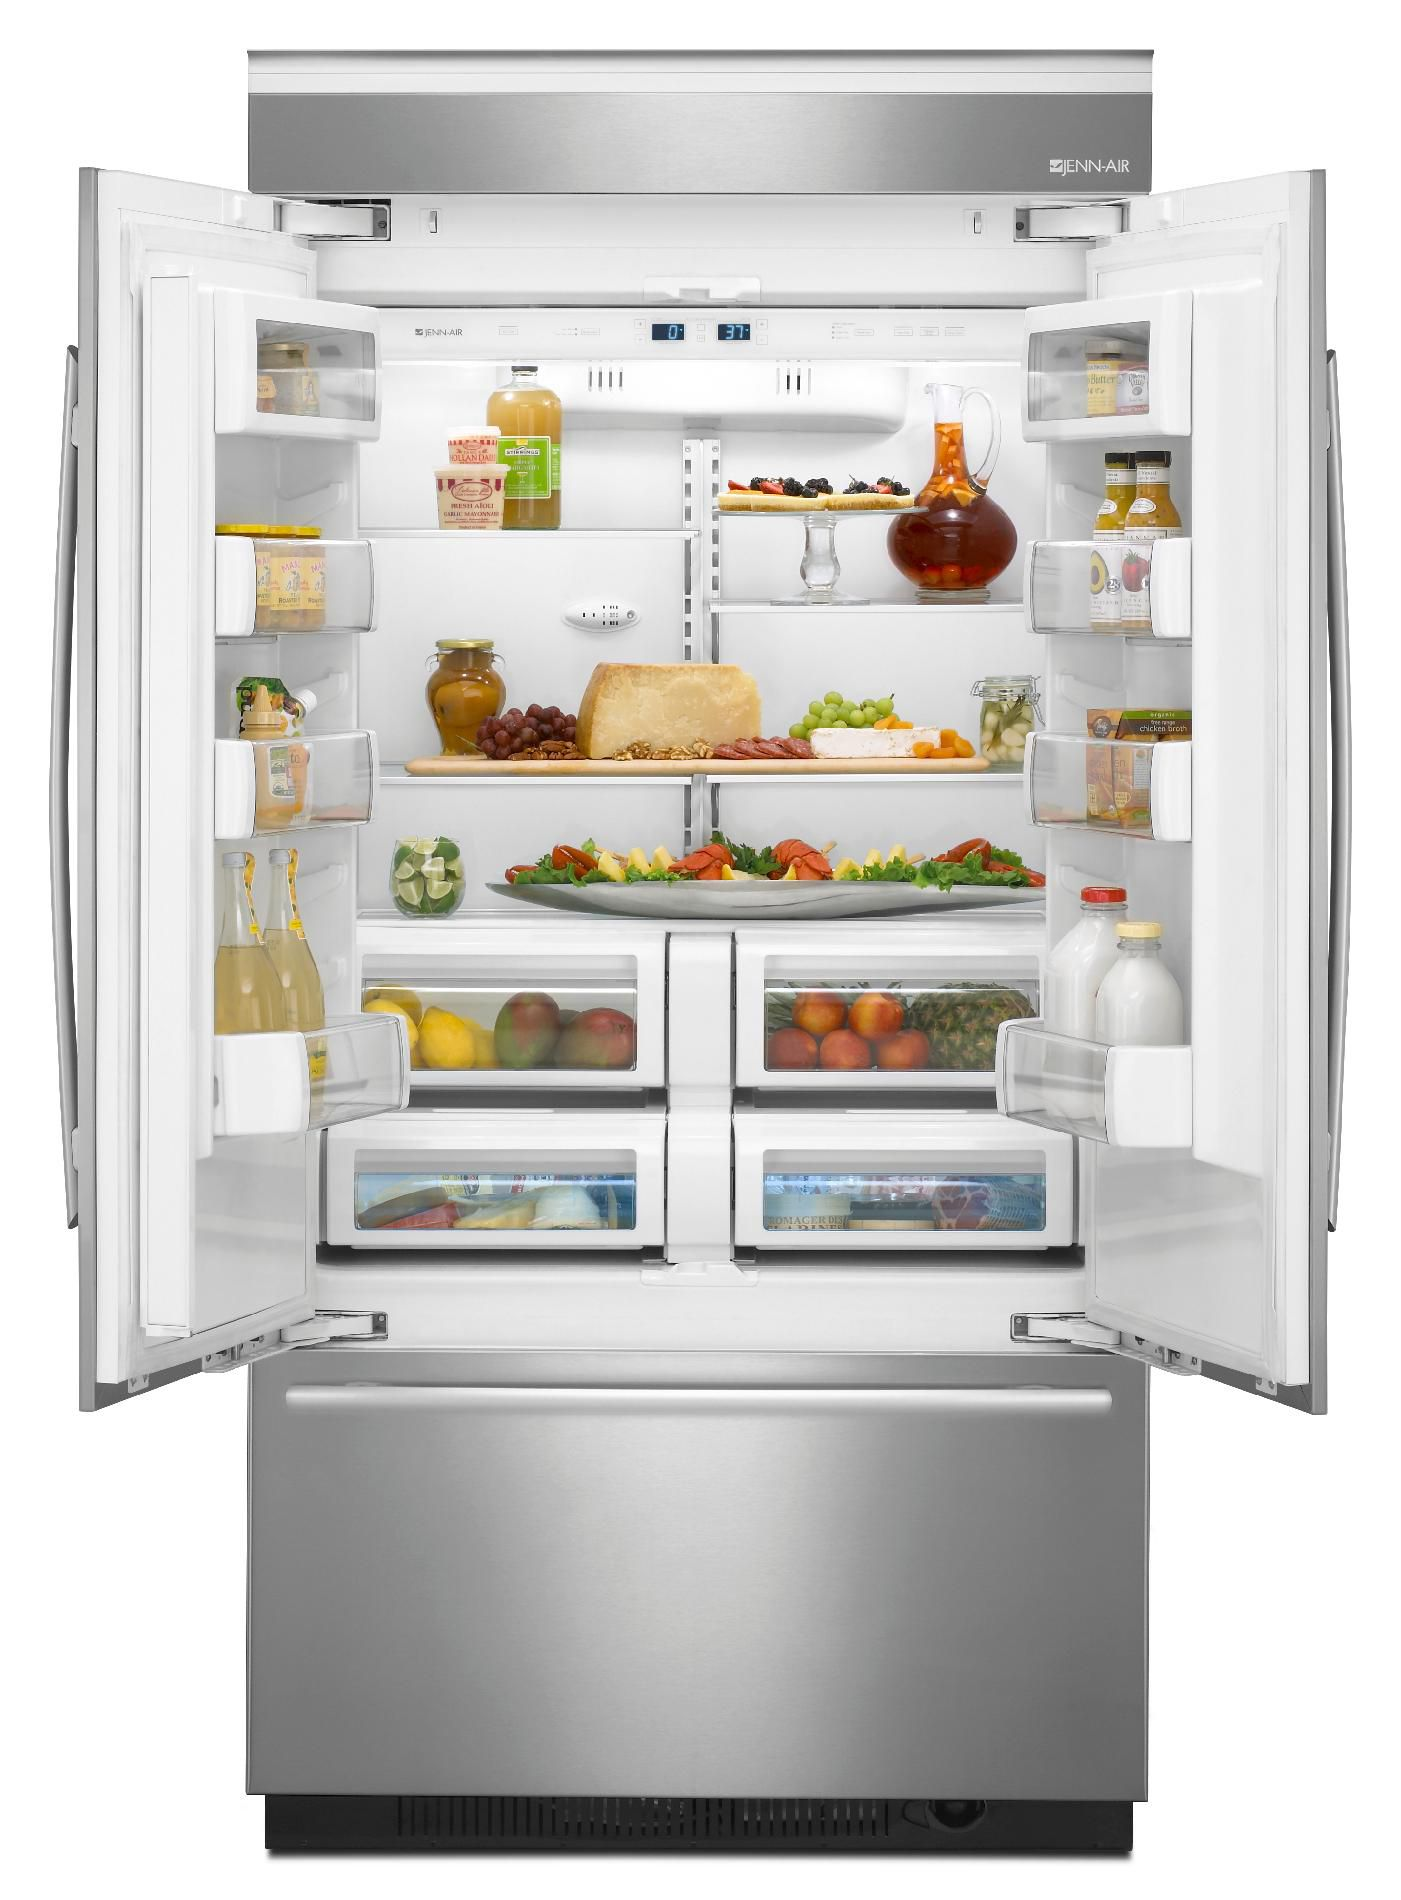 Jenn-Air 22.6 cu. ft. Fully Integrated Built-In French-Door Refrigerator